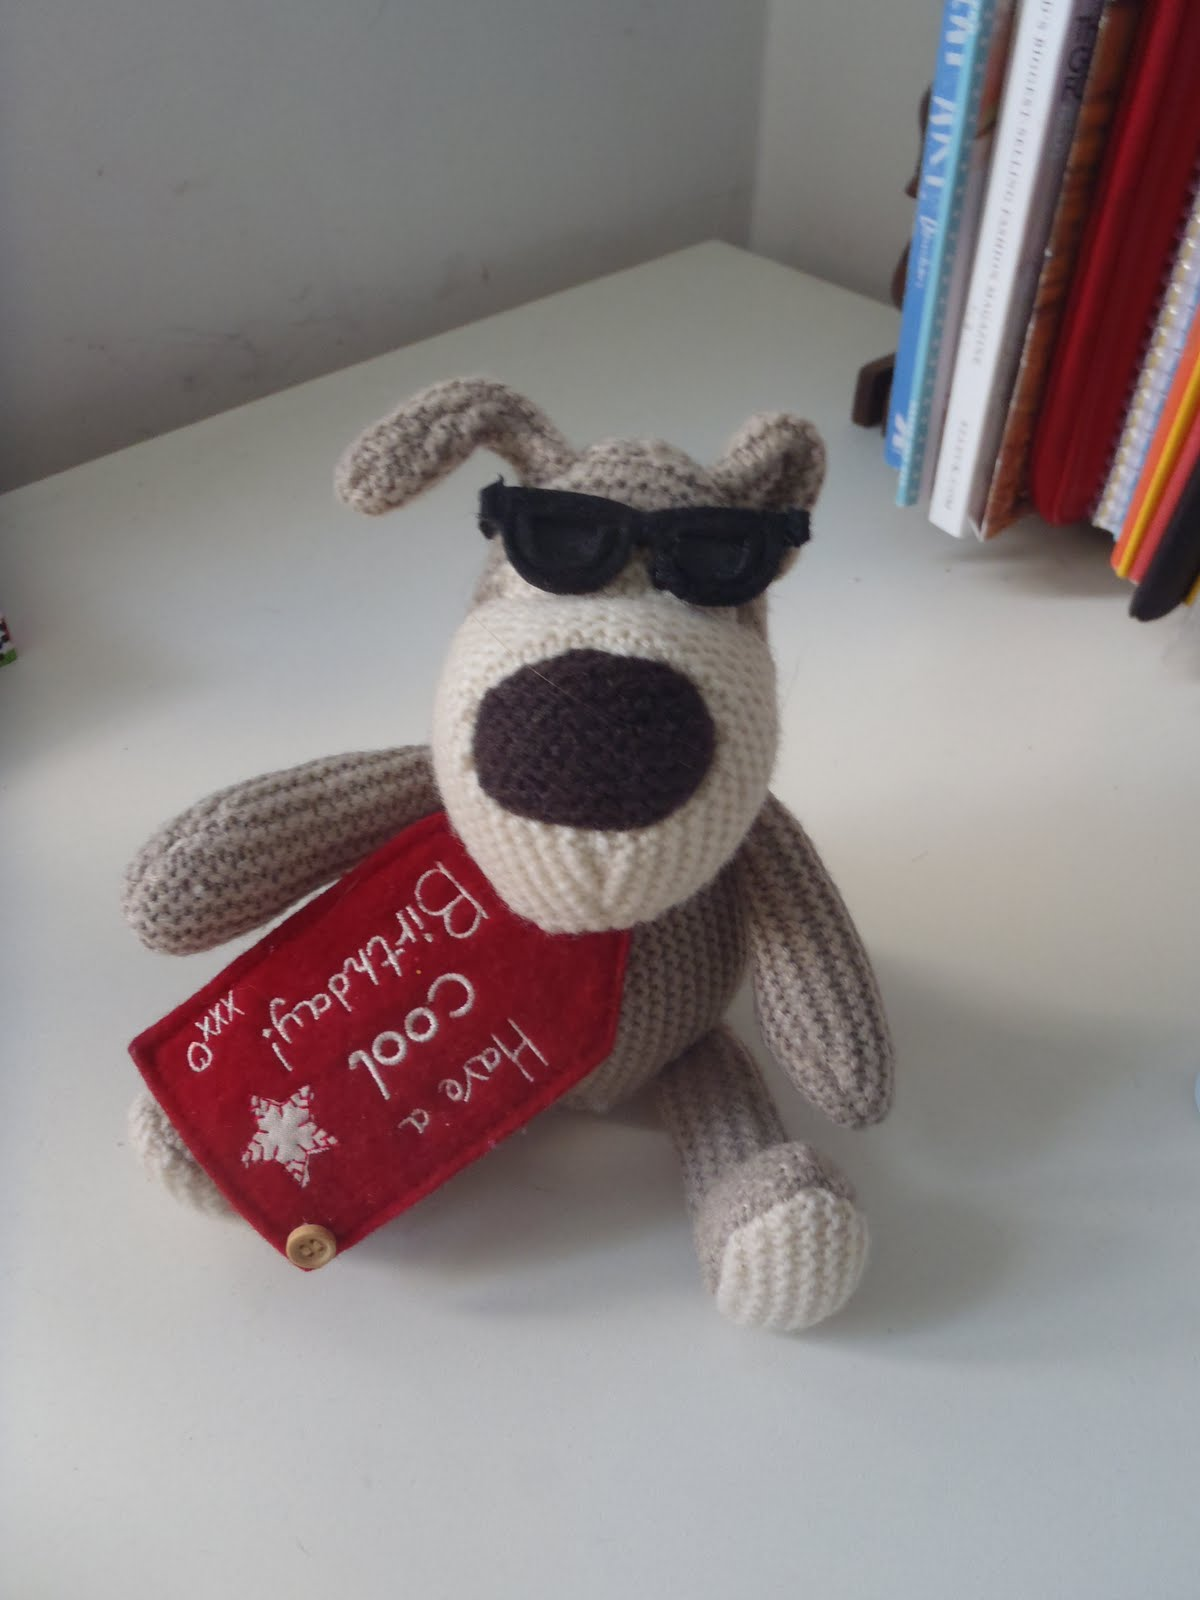 Boofle Knitting Pattern : Confessions of an Oxfordshire stitcher: B,C,D:Boofle, Crochet and Dogs!